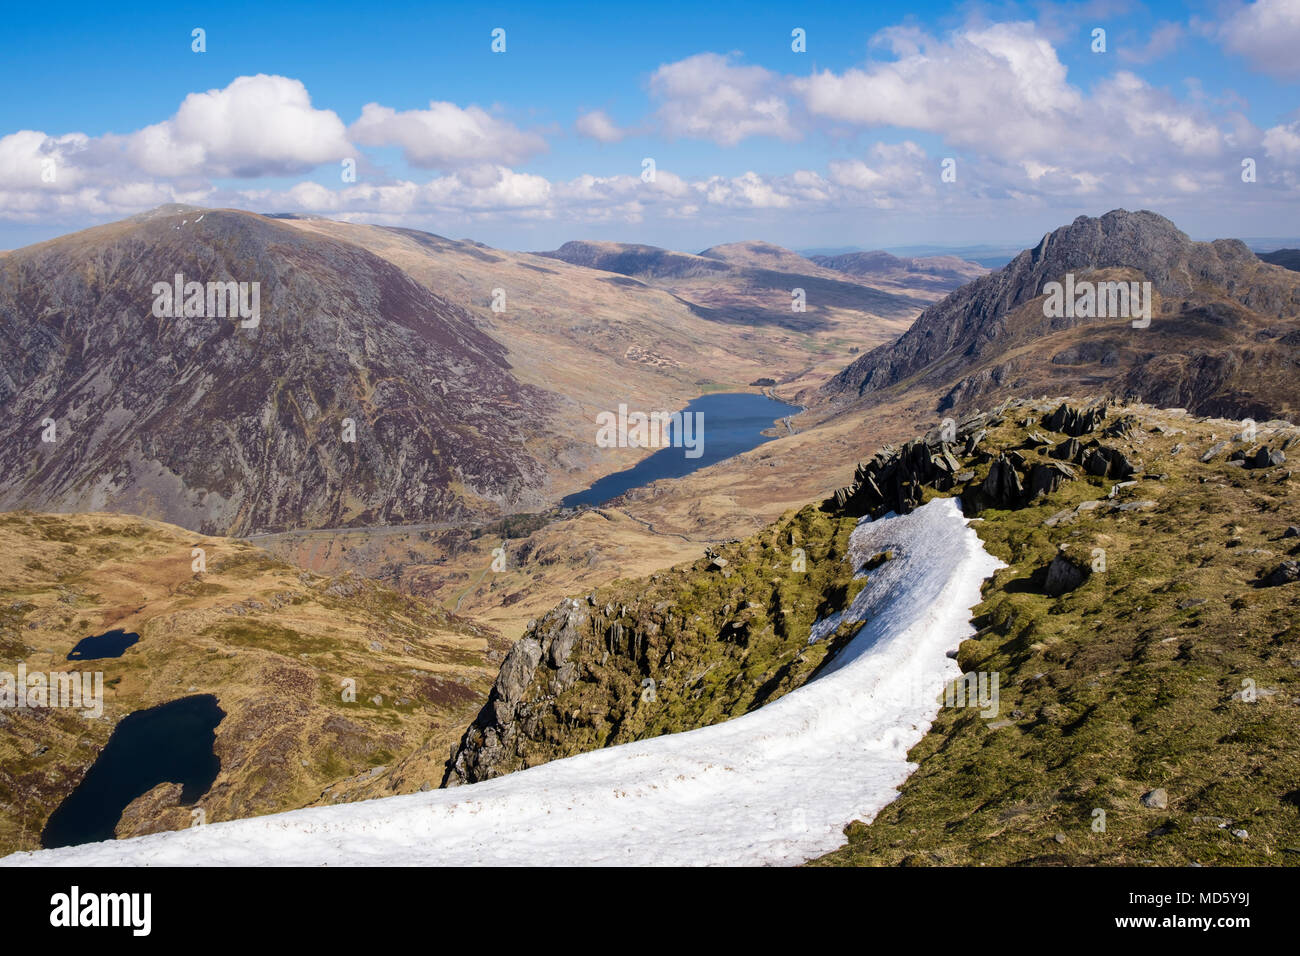 Scenic landscape seen from Y Garn ridge above Ogwen Valley in mountains of Snowdonia National Park in early spring. Ogwen, North Wales, UK, Britain - Stock Image